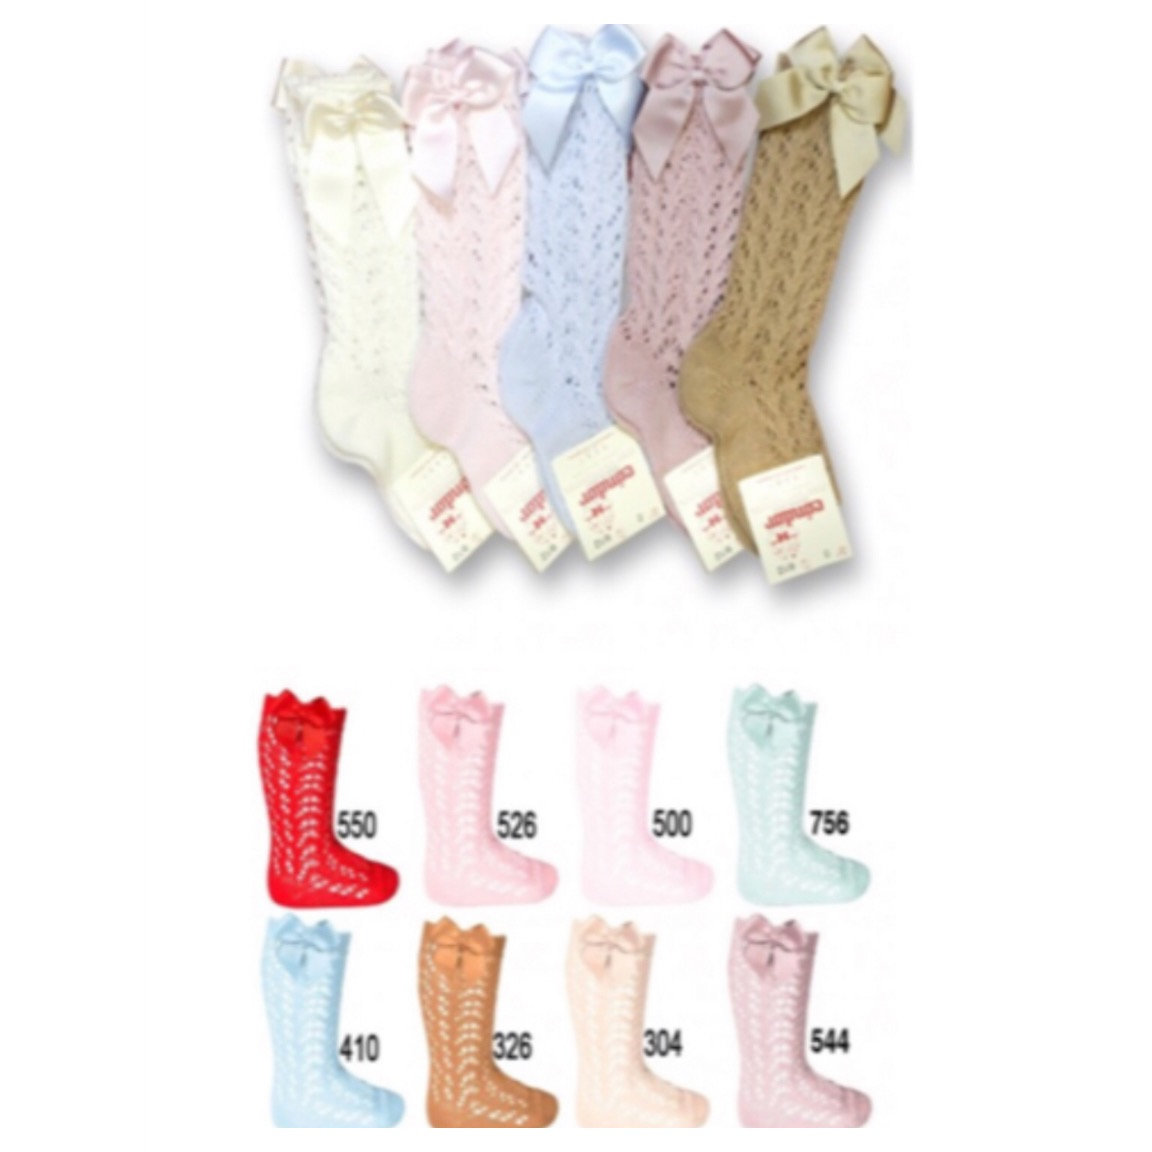 huge selection of many choices of select for genuine Condor Summer Socks